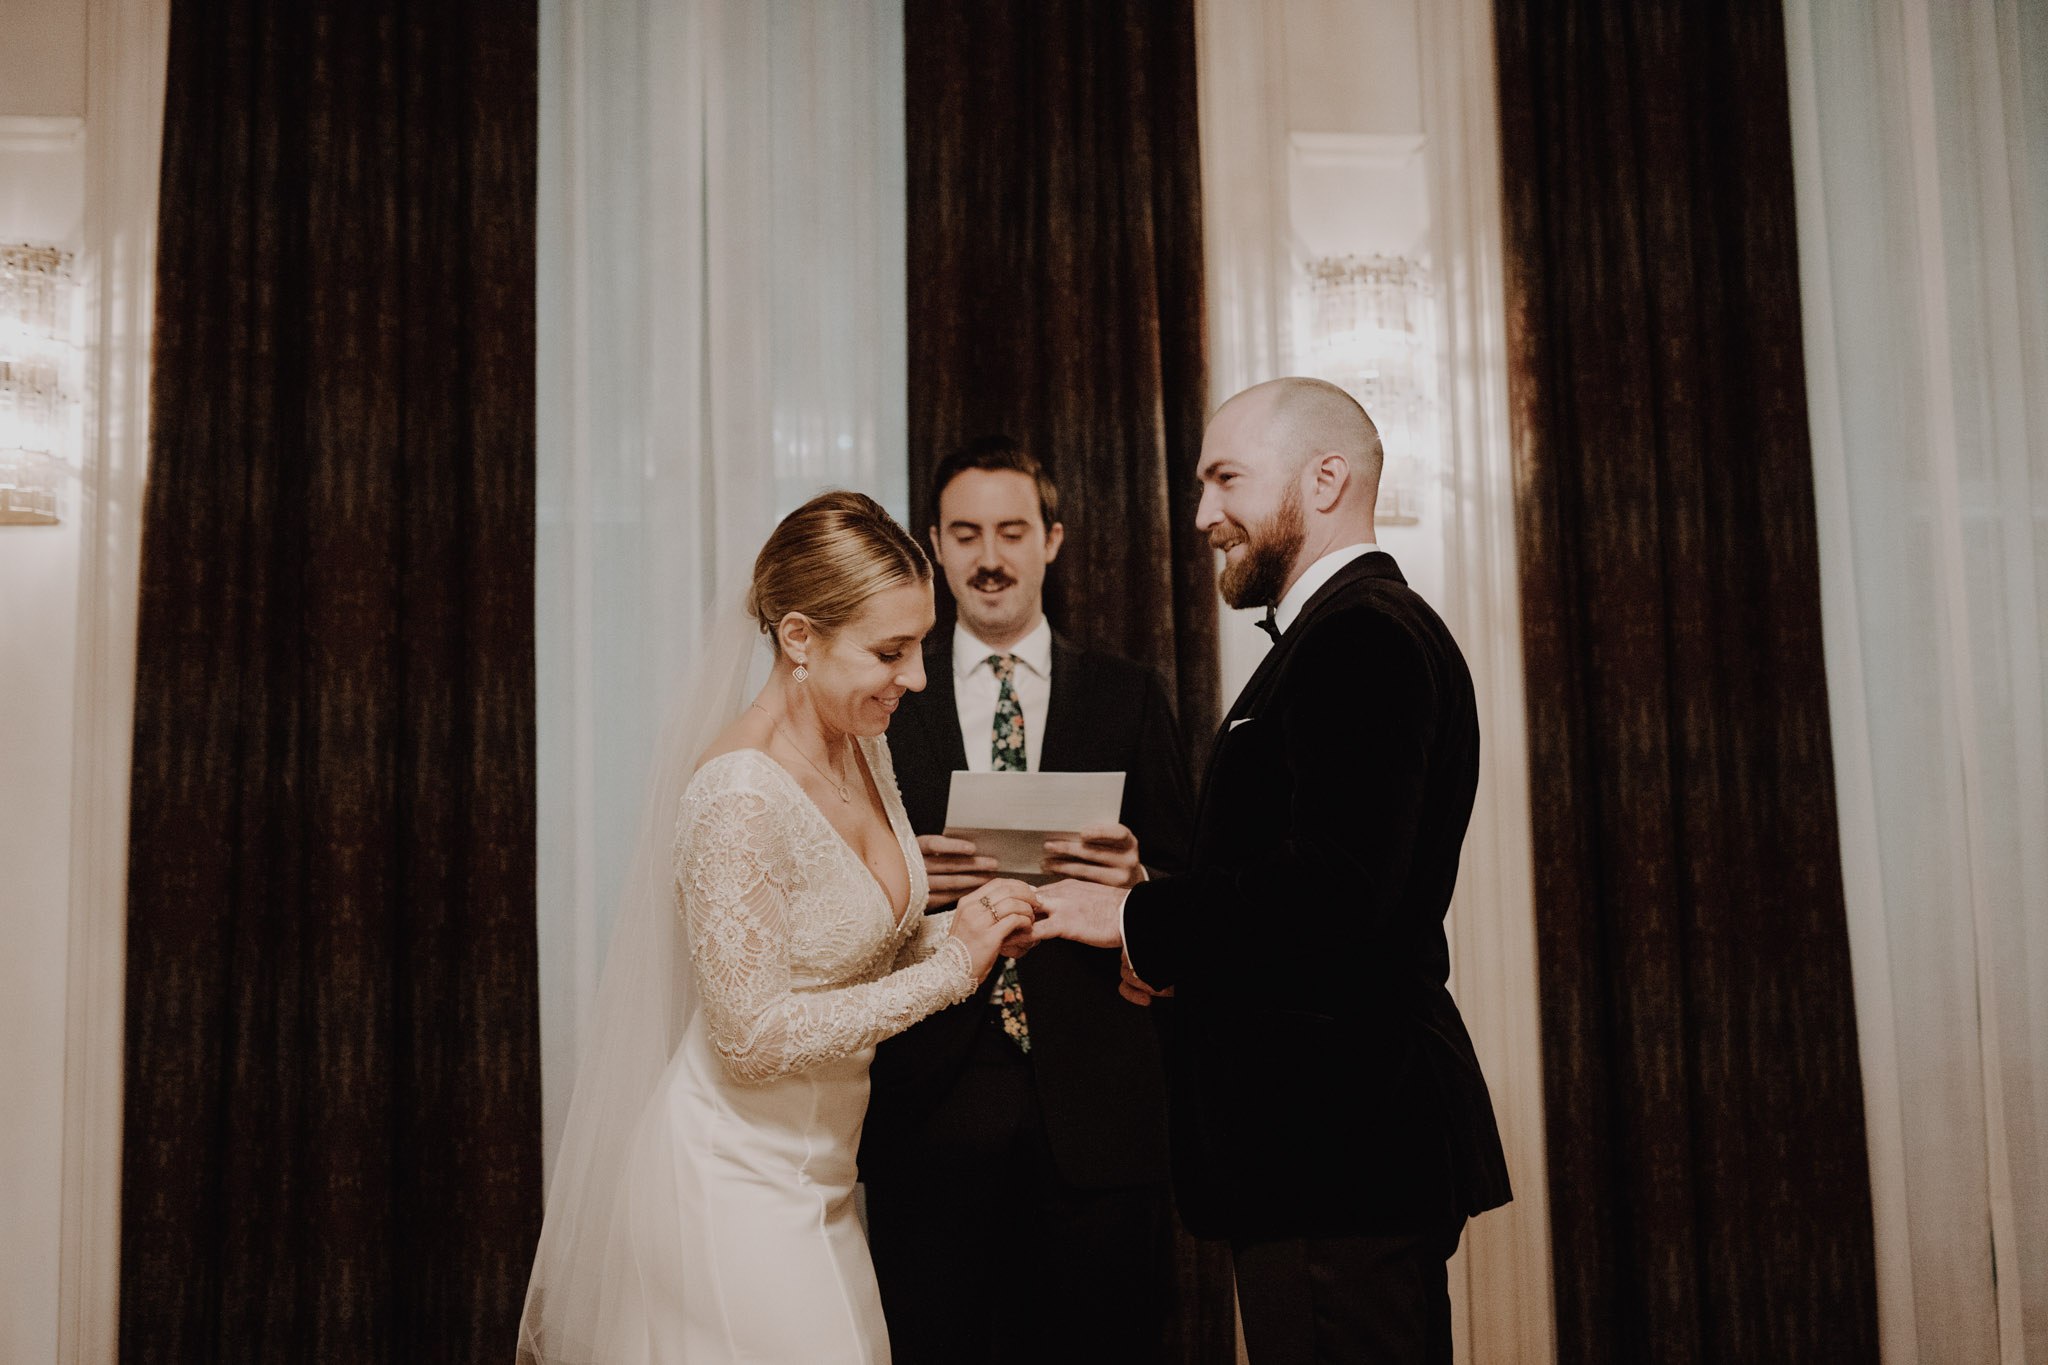 Downtown NYC Wedding - The Beekman Hotel - exchanging rings